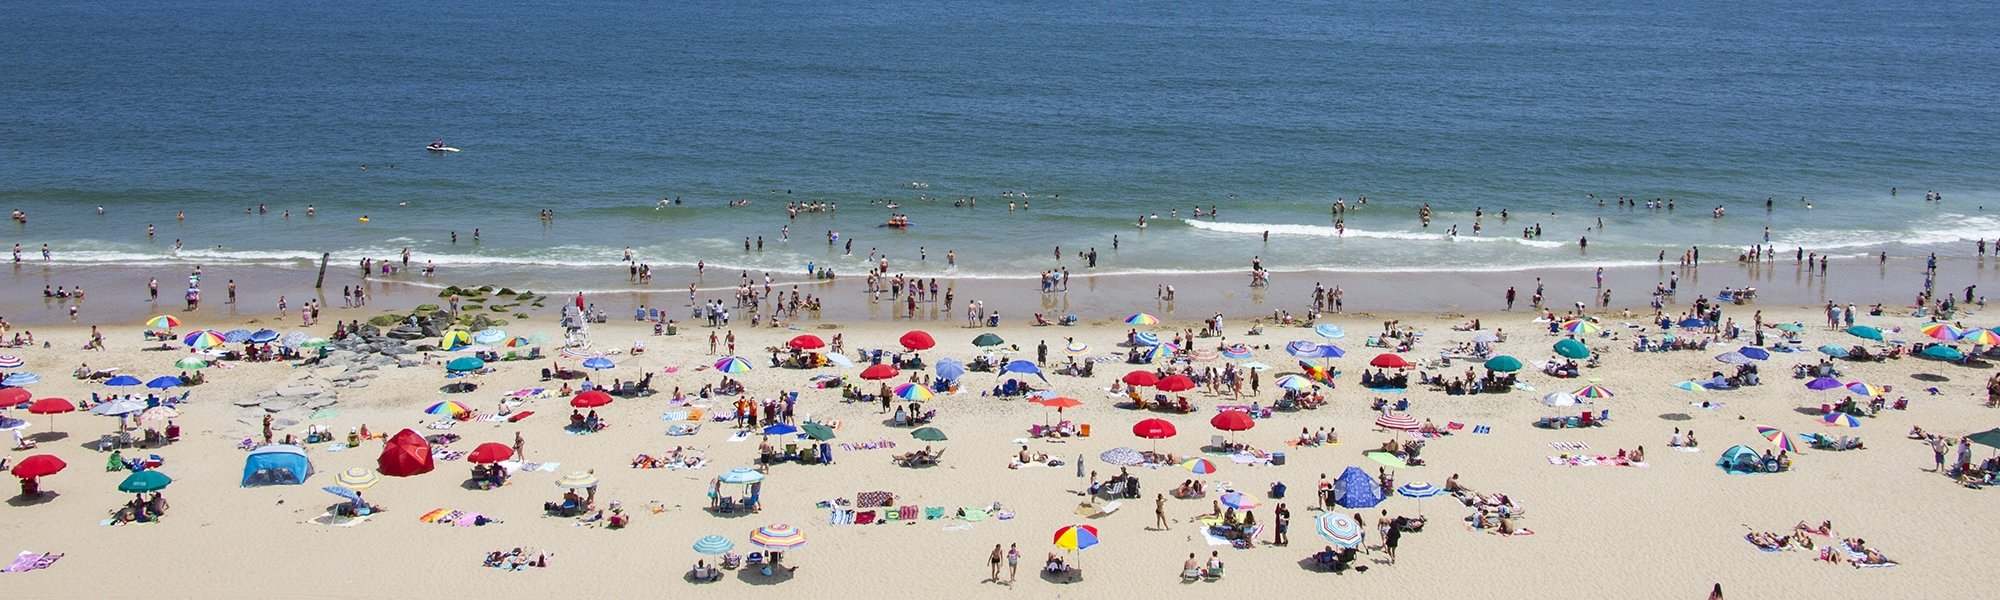 beaches of ocean city md crowded with people